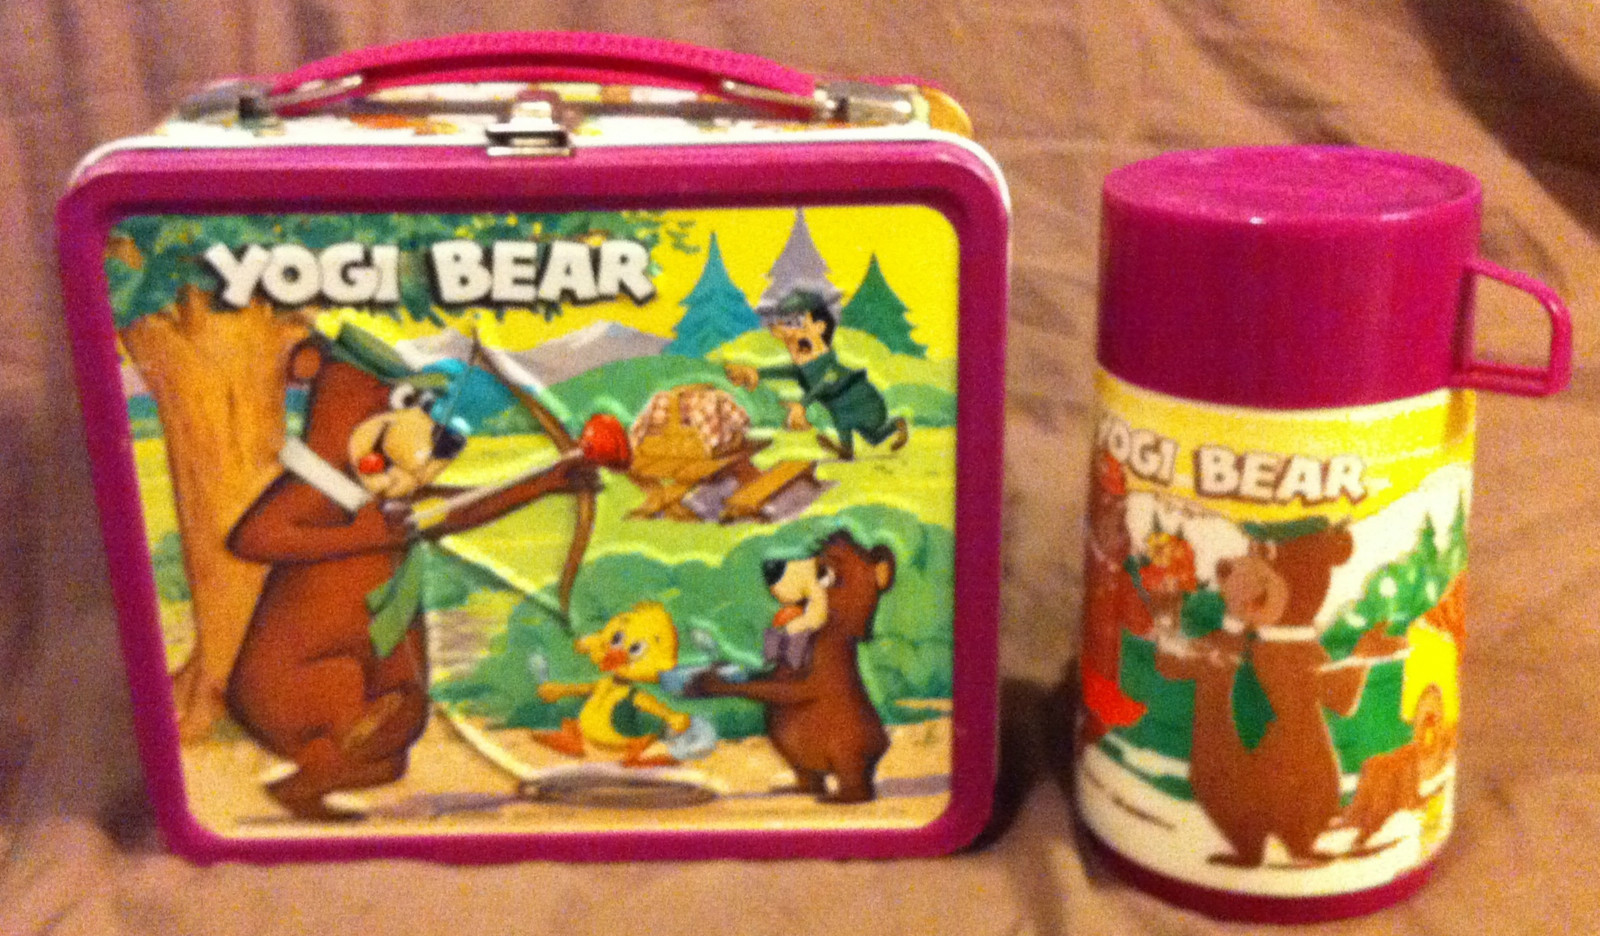 Item: Excellent Original C9 1974 Yogi Bear Lunchbox With Thermos